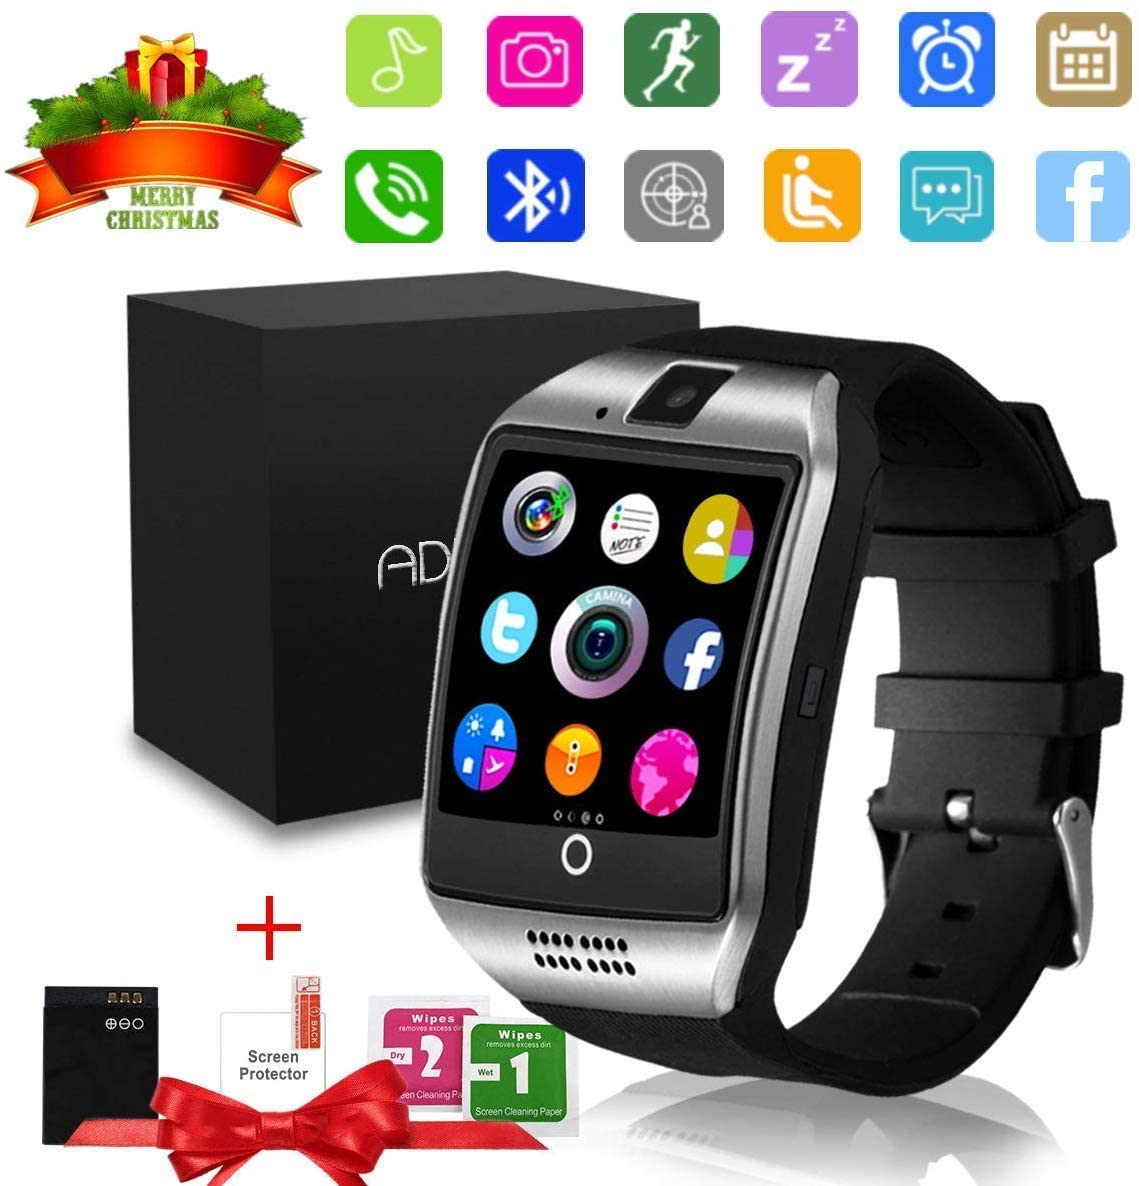 Smart Watch,Bluetooth SmartWatch with Camera Touchscreen,Smart Watches Waterproof Unlocked Phones Watch with SIM Card Slot,SmartWatches Compatible with Android Phone XS 8 7 6 Samsung (Silver -Q18)